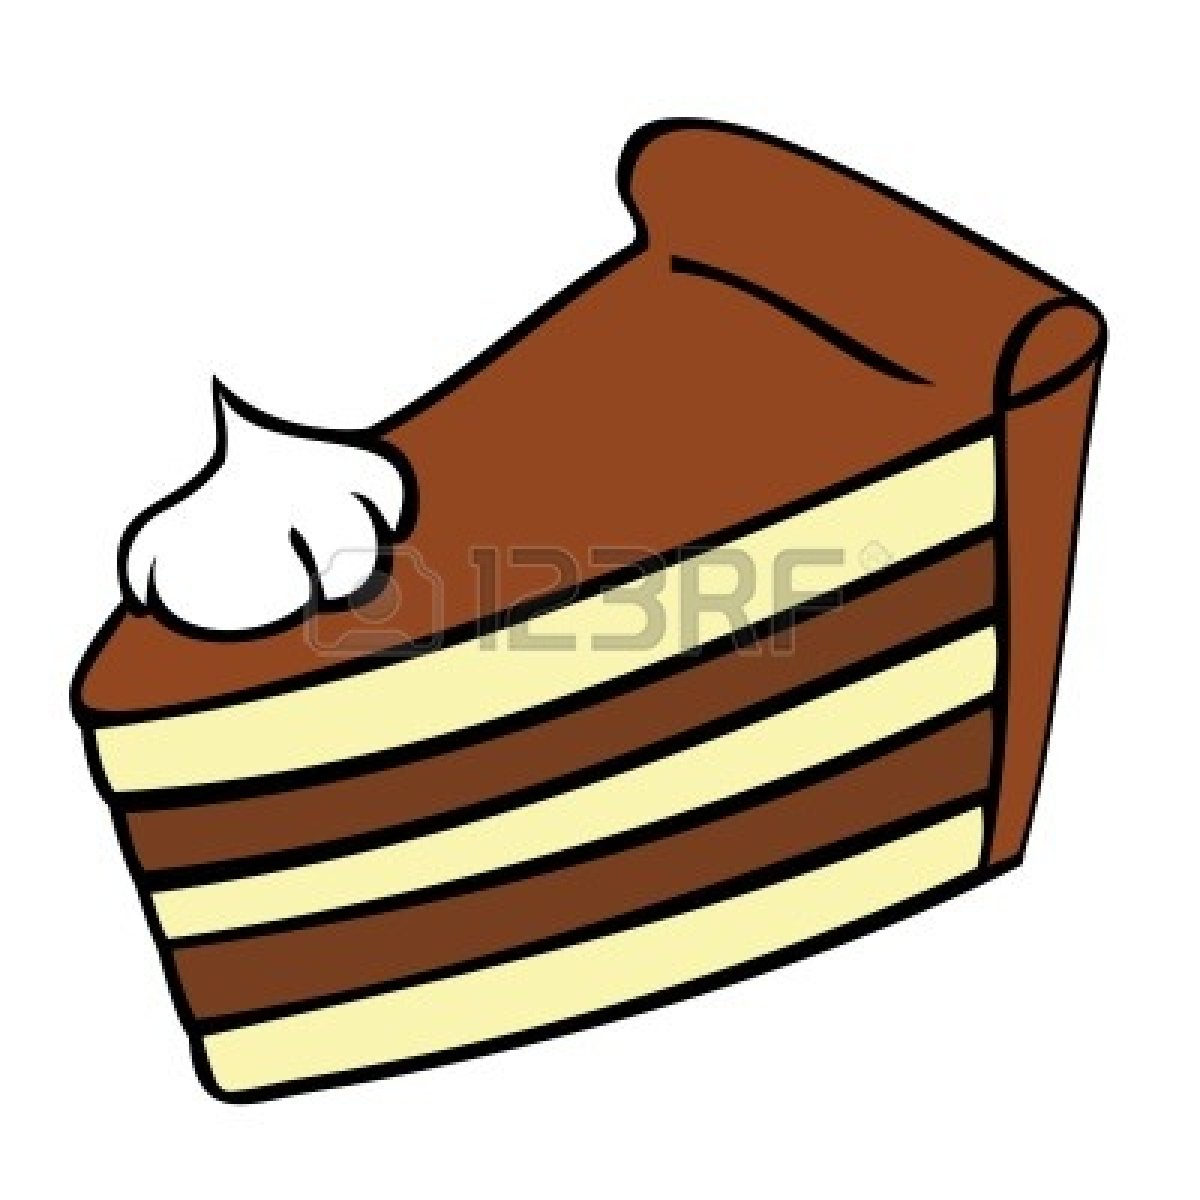 Cake clipart slice clipart transparent Slice Of Cake Clipart Black And White | Clipart Panda - Free ... clipart transparent